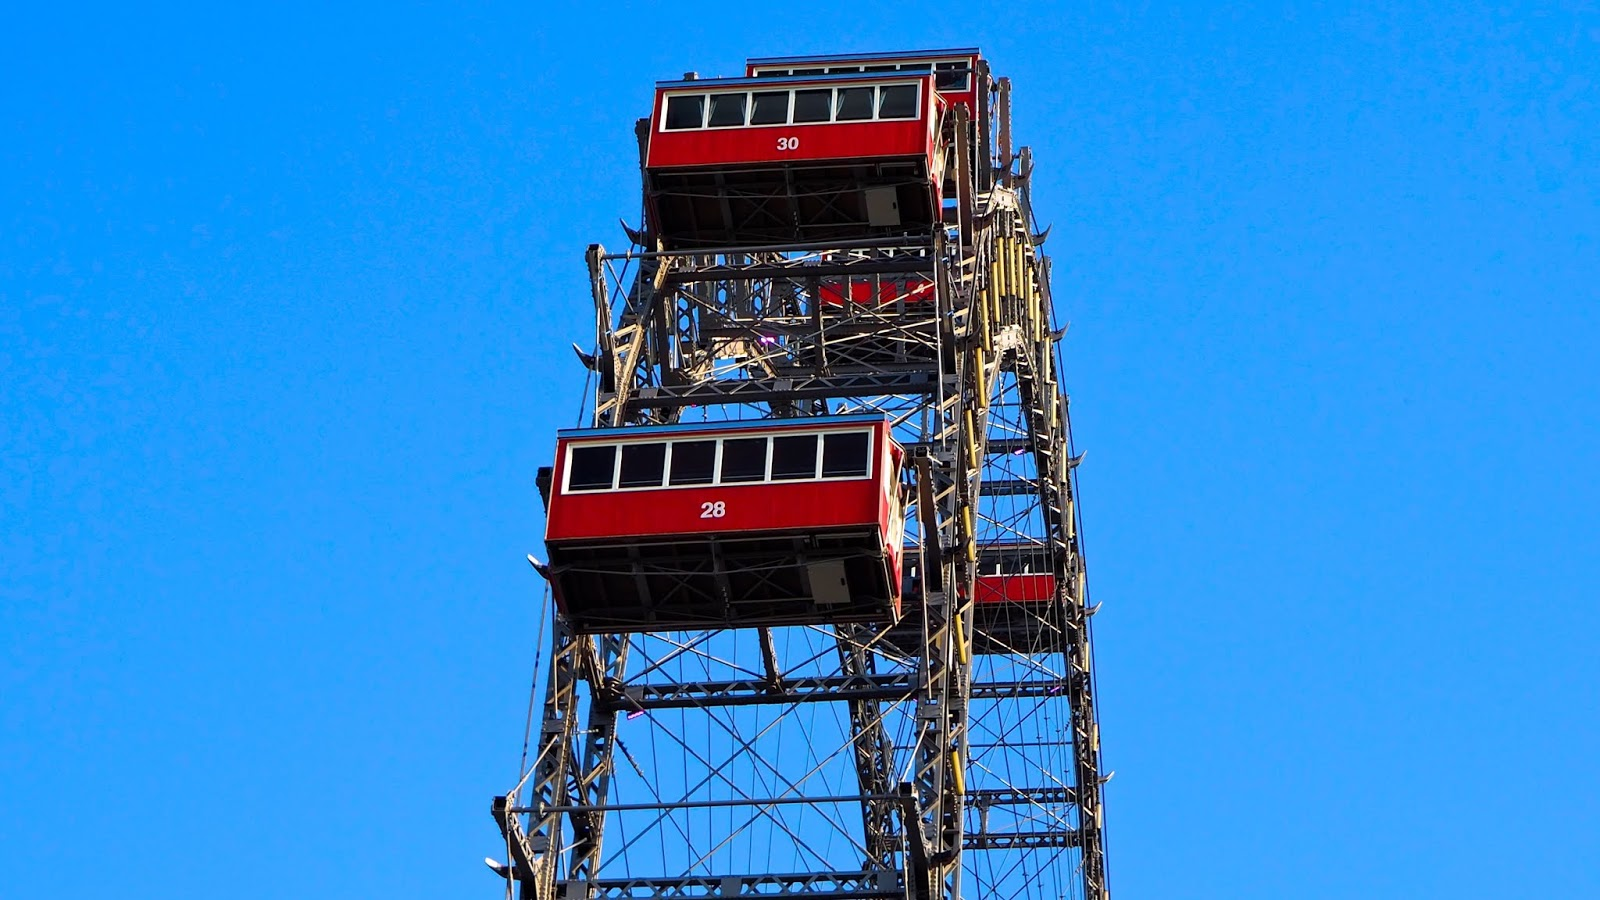 Closeup of Riesenrad ferris wheel carriages